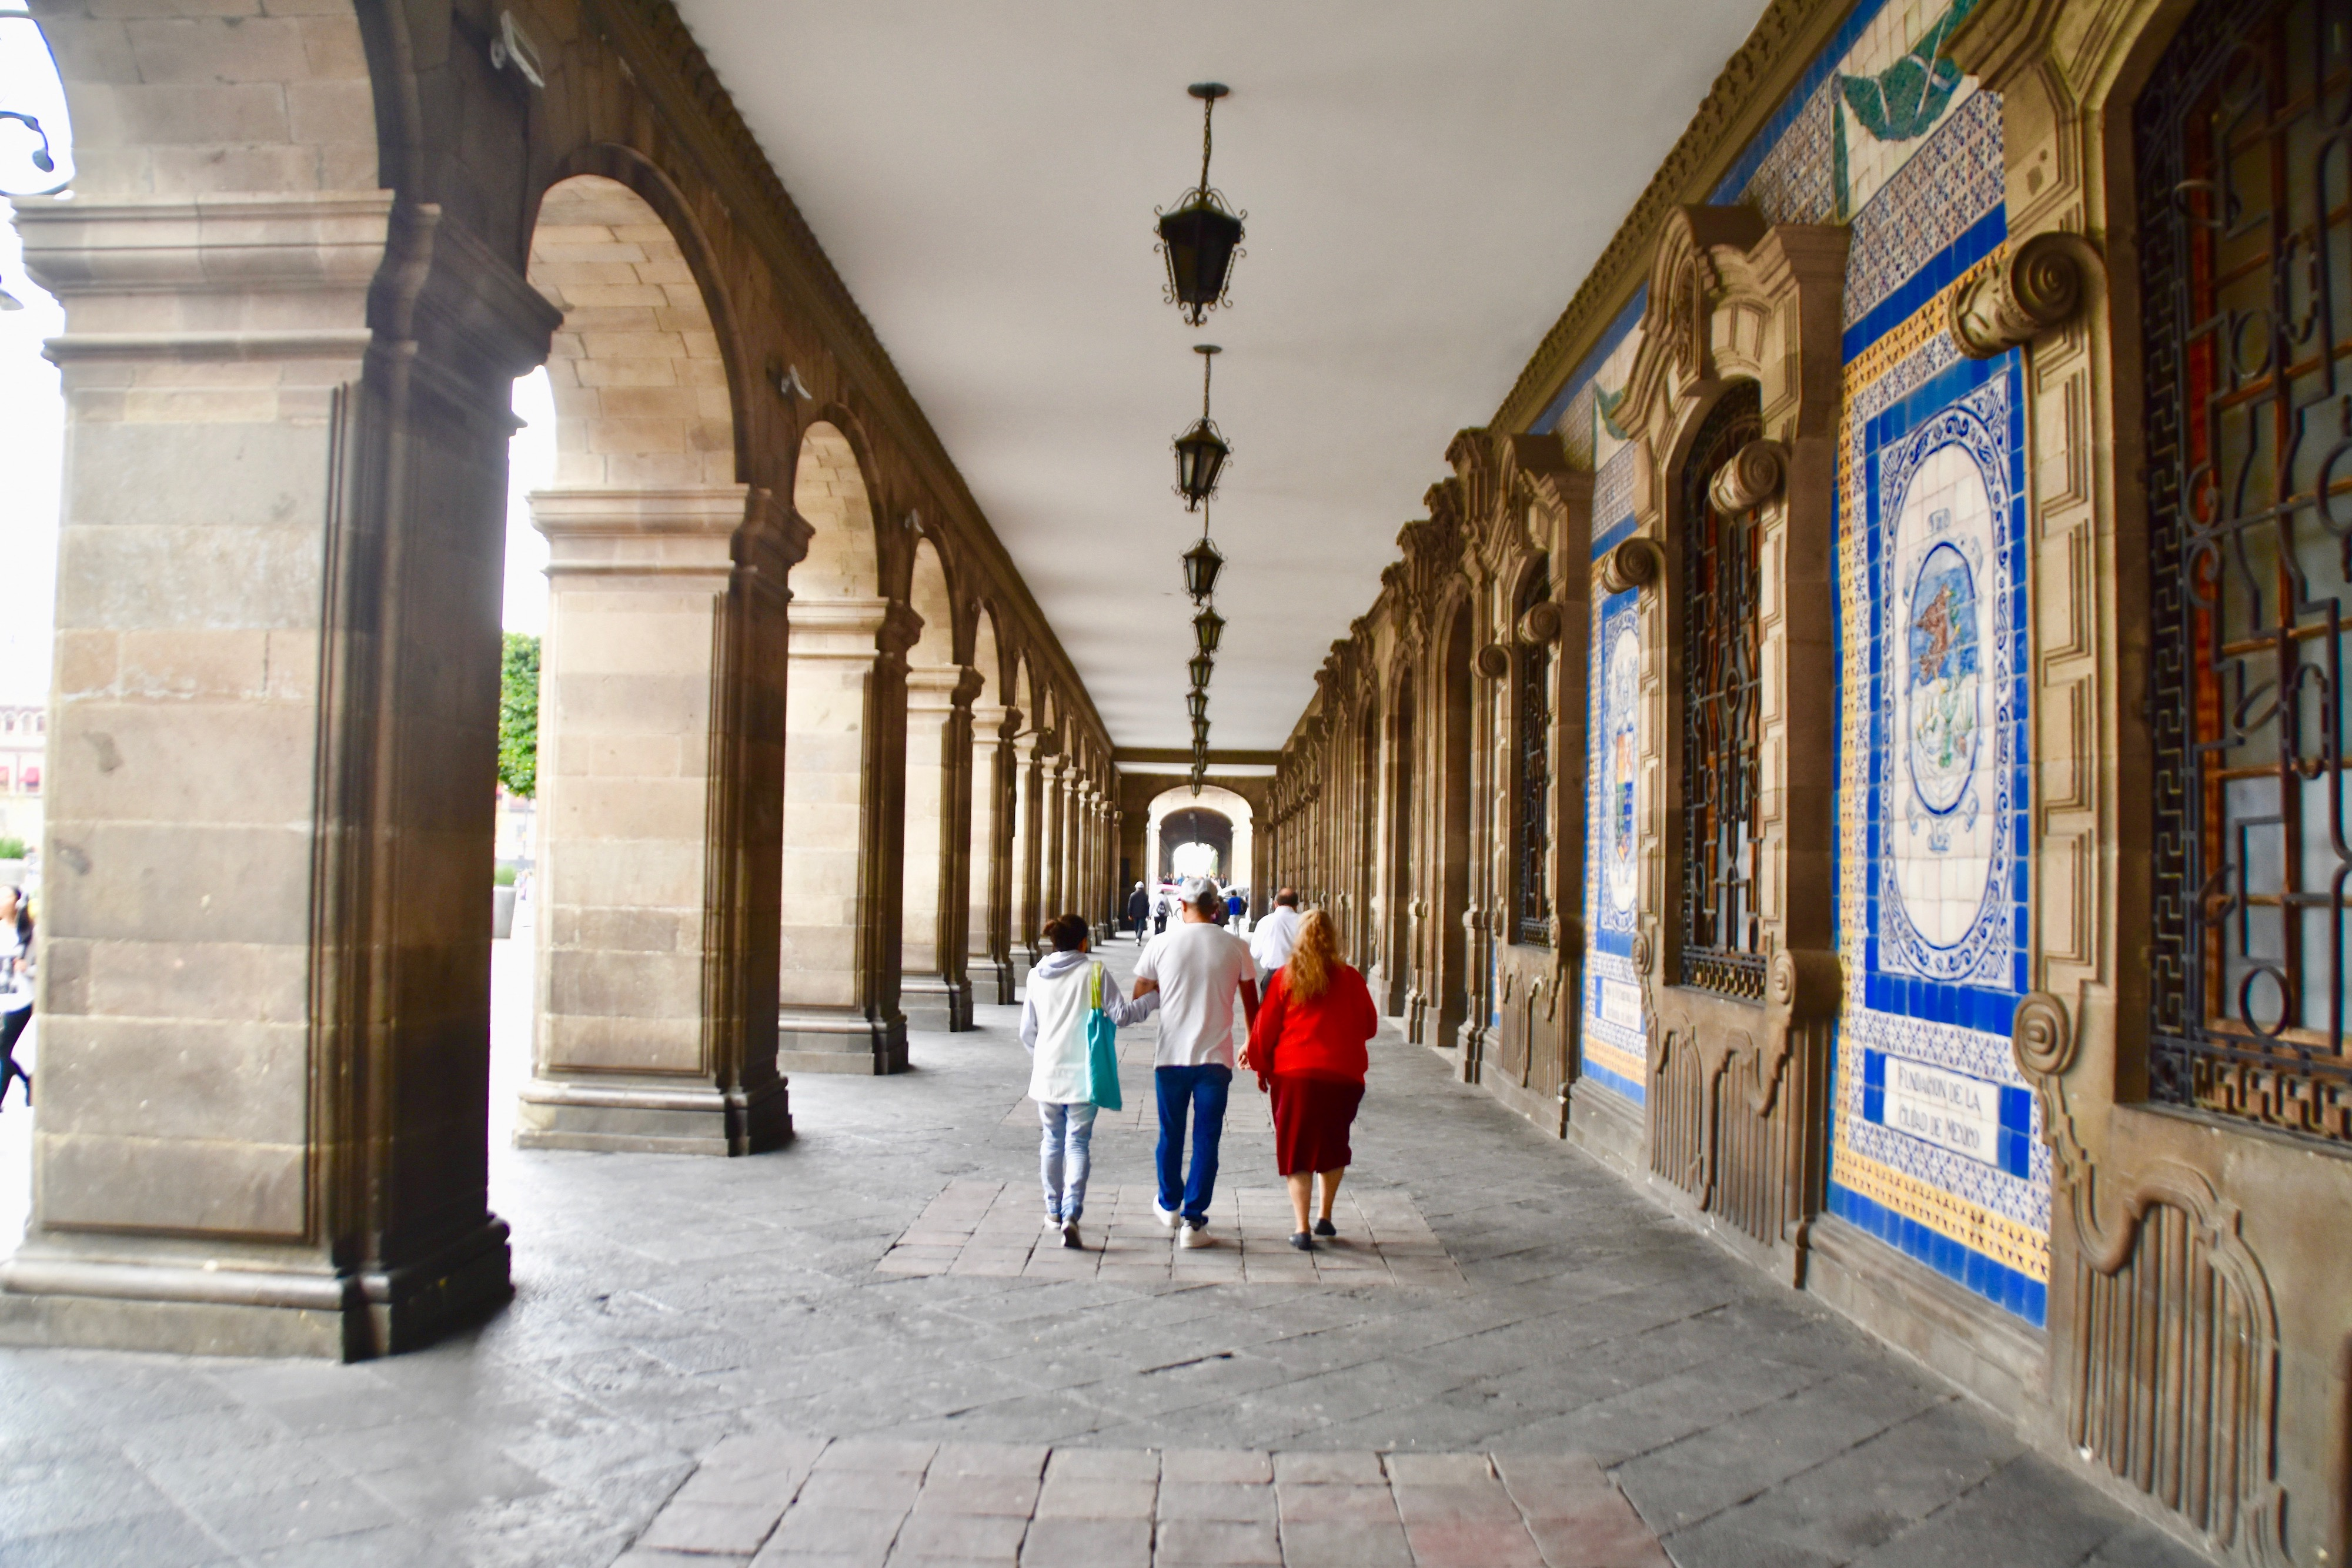 Colonnade on the Zocalo, Mexico City